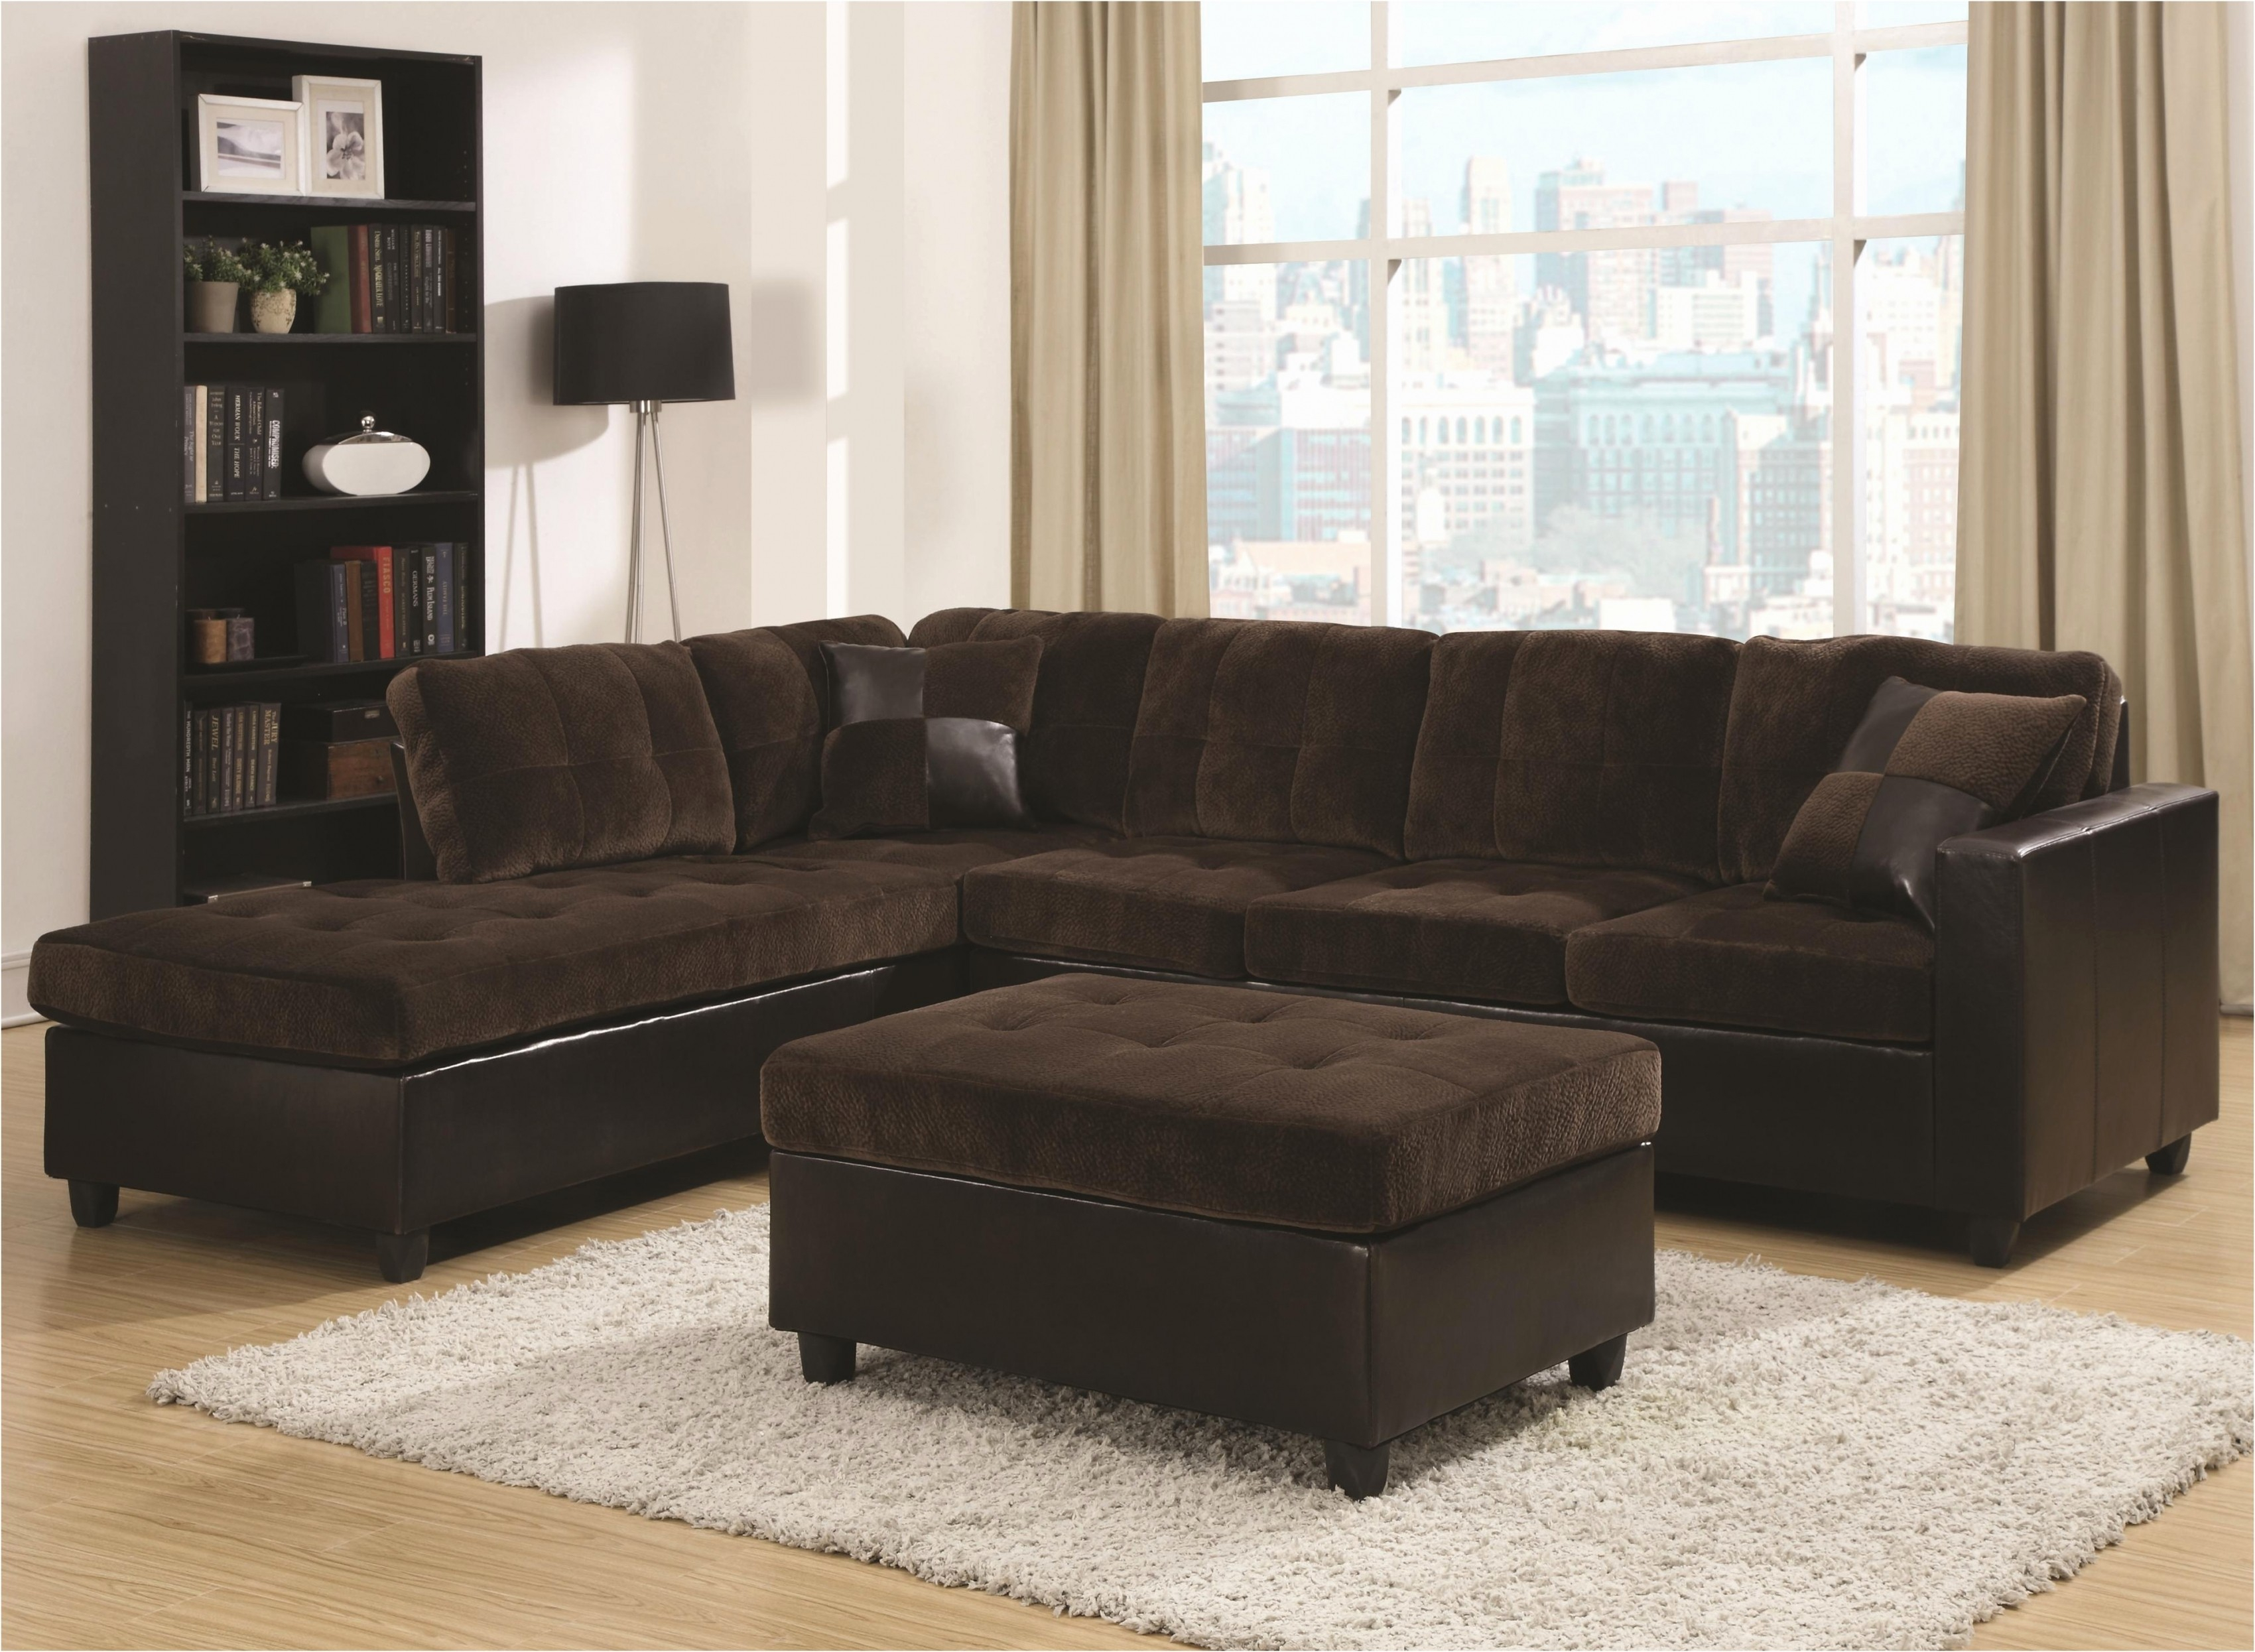 Leather Sofas Under 500 Fresh 52 Luxury Living Room Furniture Sets intended for 15 Some of the Coolest Initiatives of How to Upgrade Cheap Living Room Sets Under 500